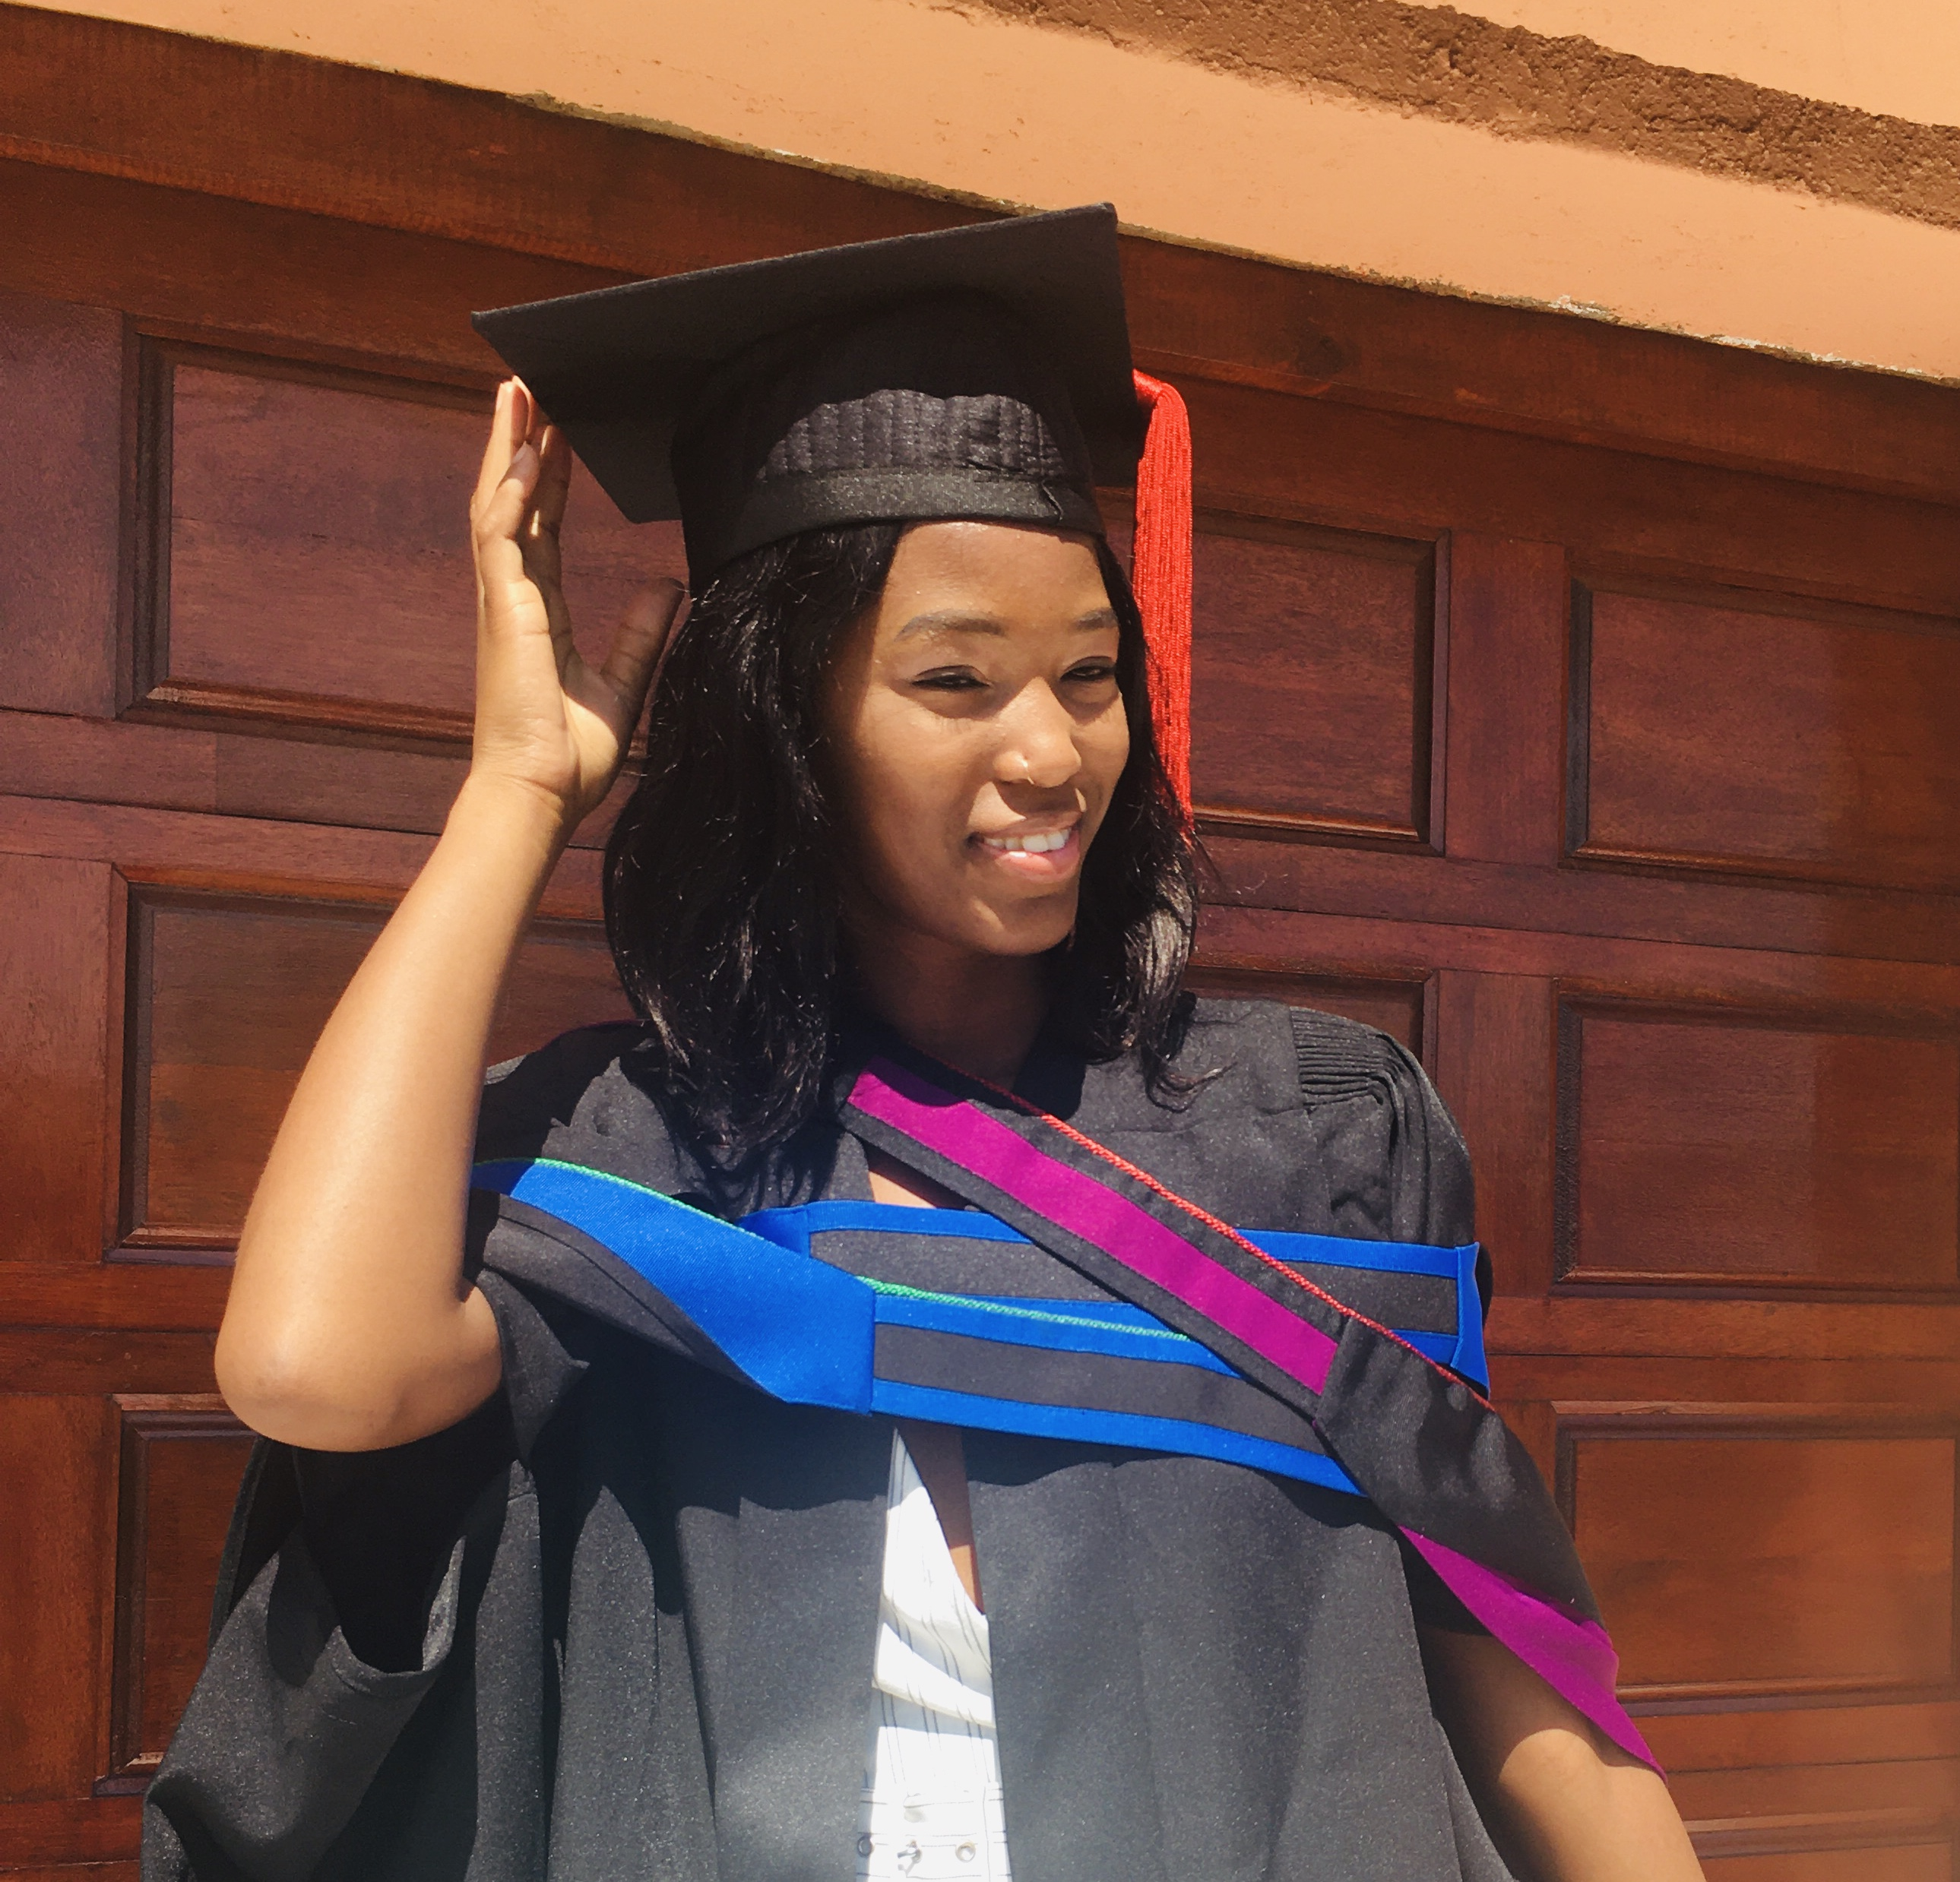 Sebotsana Paula Rasebotsa was awarded the Dean's Medal for achieving the best results in respect of a master's degree in the Faculty of Health Sciences.